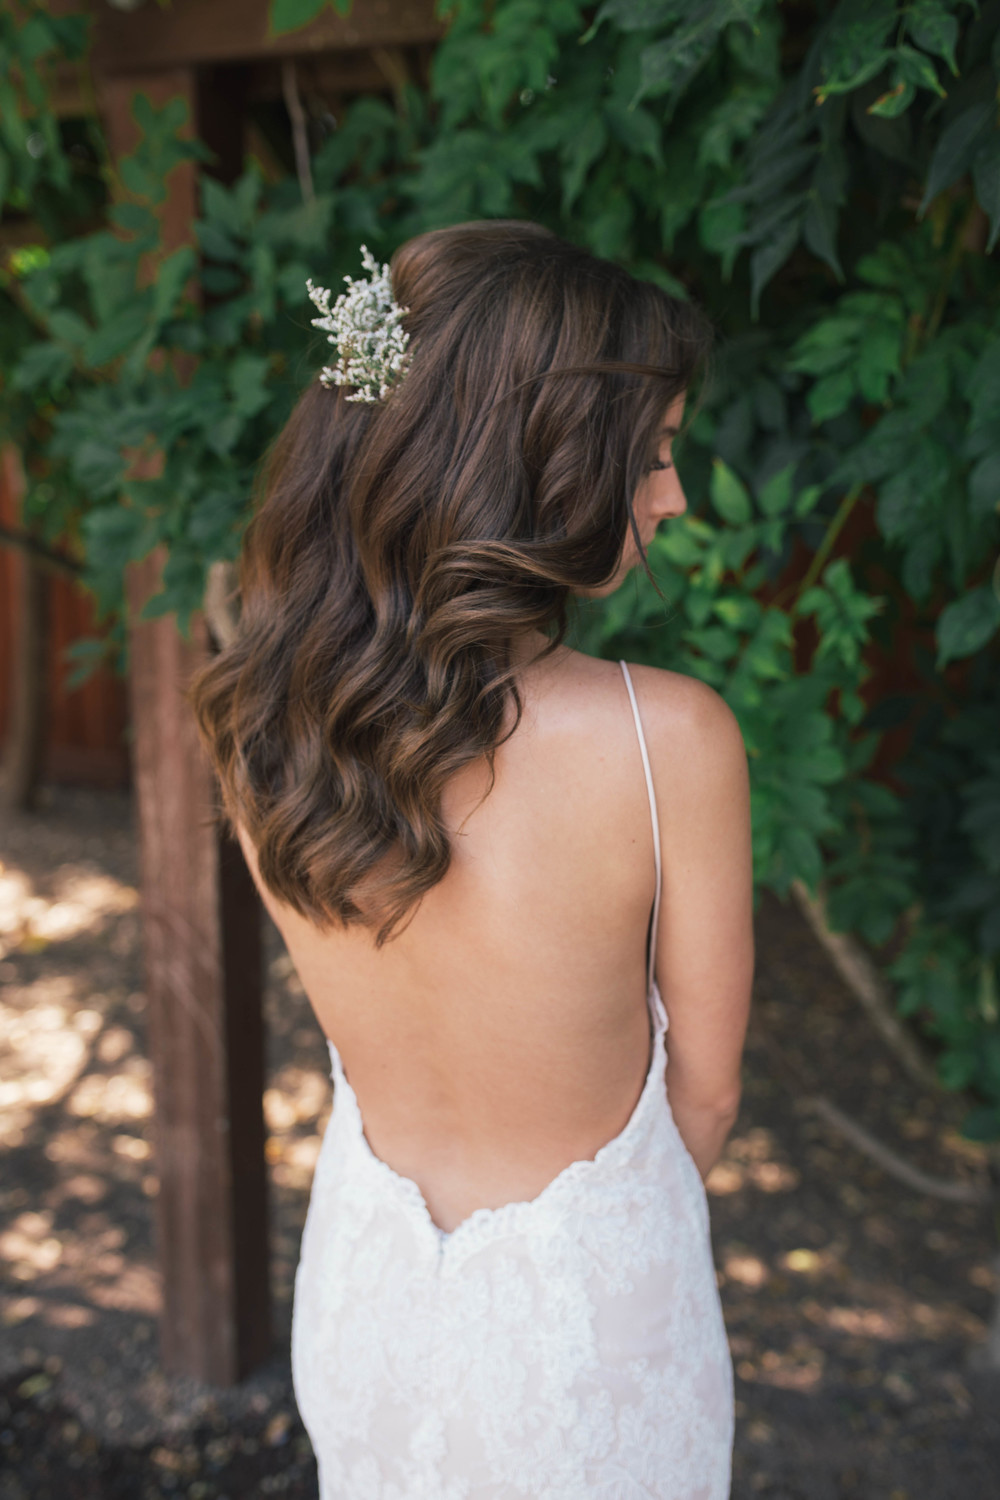 sonoma-county-wedding-photographer-backyard-bride-leaves-wtoo-dress-low-back